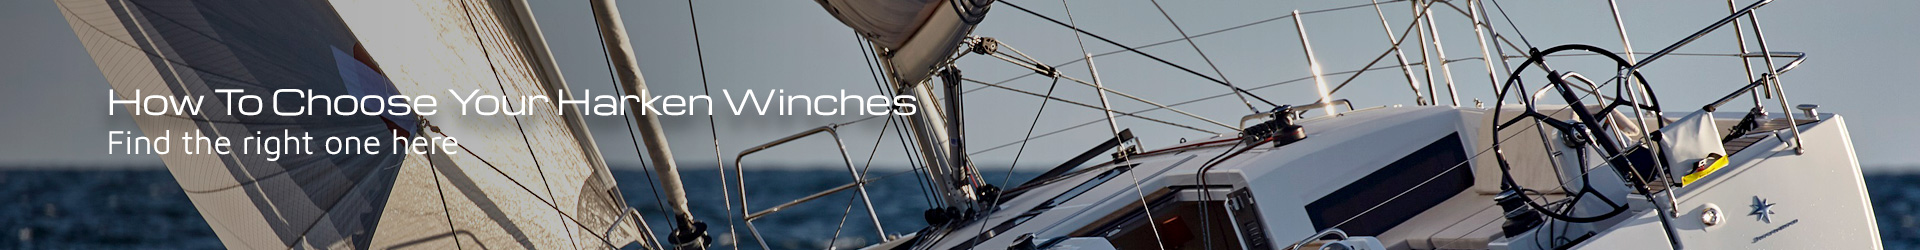 How To Choose Your Harken Winches